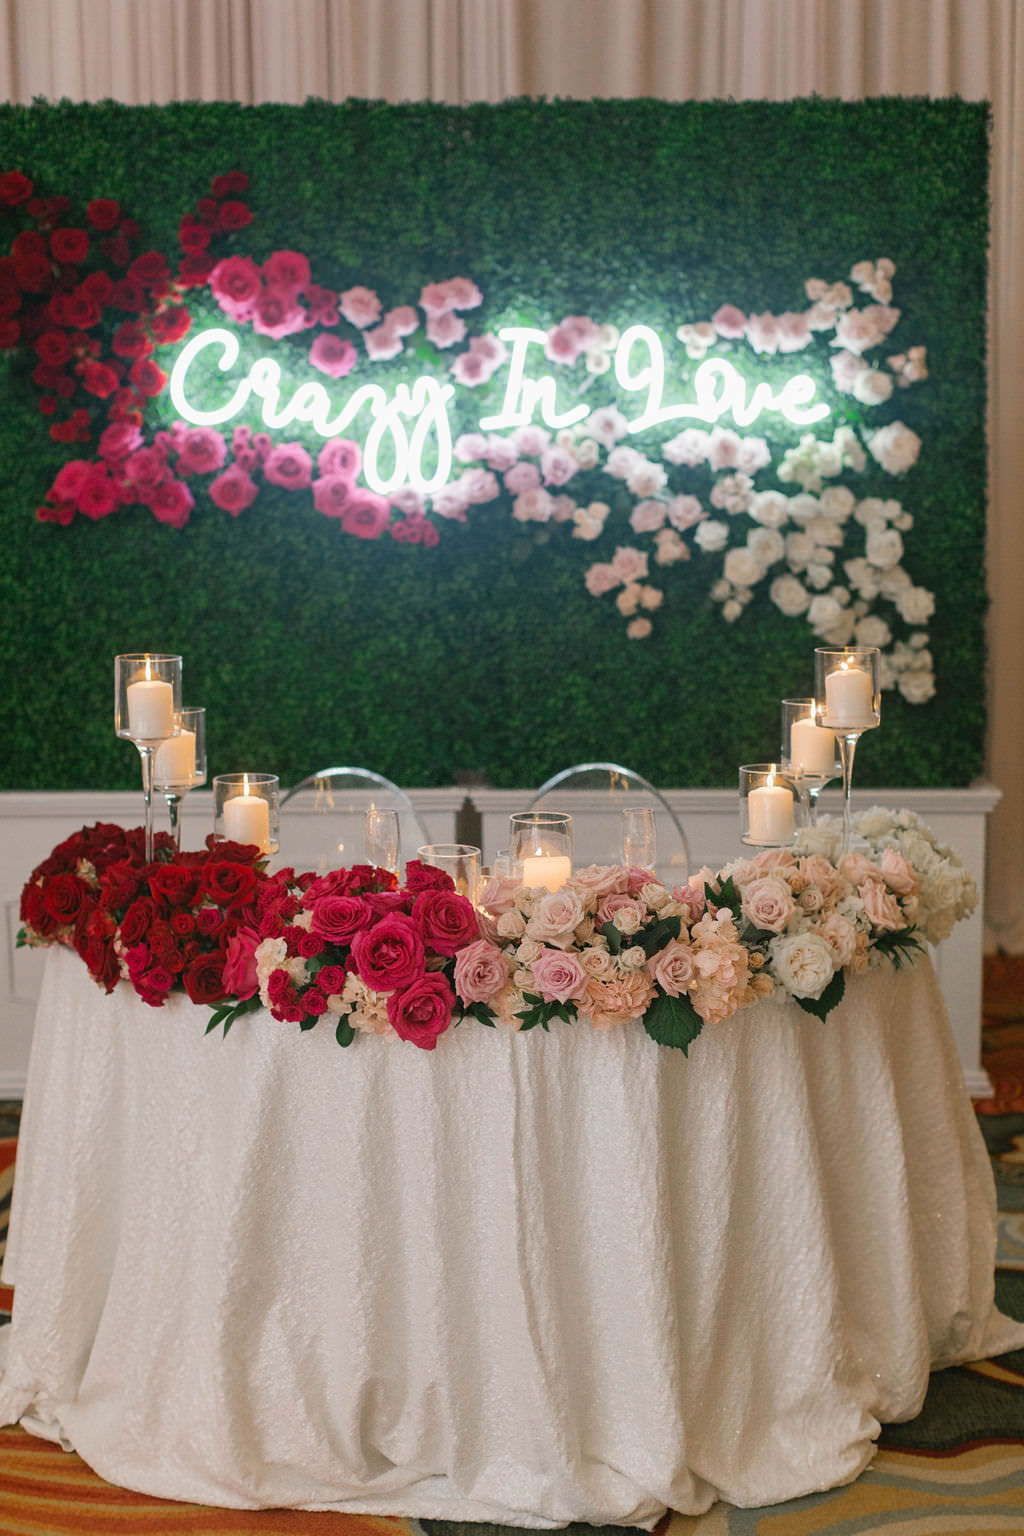 Romantic Wedding Reception Decor, Sweetheart Table with White Linen, Red, Blush Pink and Ivory Roses, Glass Candlesticks, Greenery Wall Backdrop with Crazy In Love Neon Sign and Roses   Tampa Bay Wedding Planner Parties A'la Carte   St. Pete Hotel Wedding Venue The Vinoy Renaissance   Wedding Florist Bruce Wayne Florals   Wedding Rentals A Chair Affair   Over the Top Rental Linens